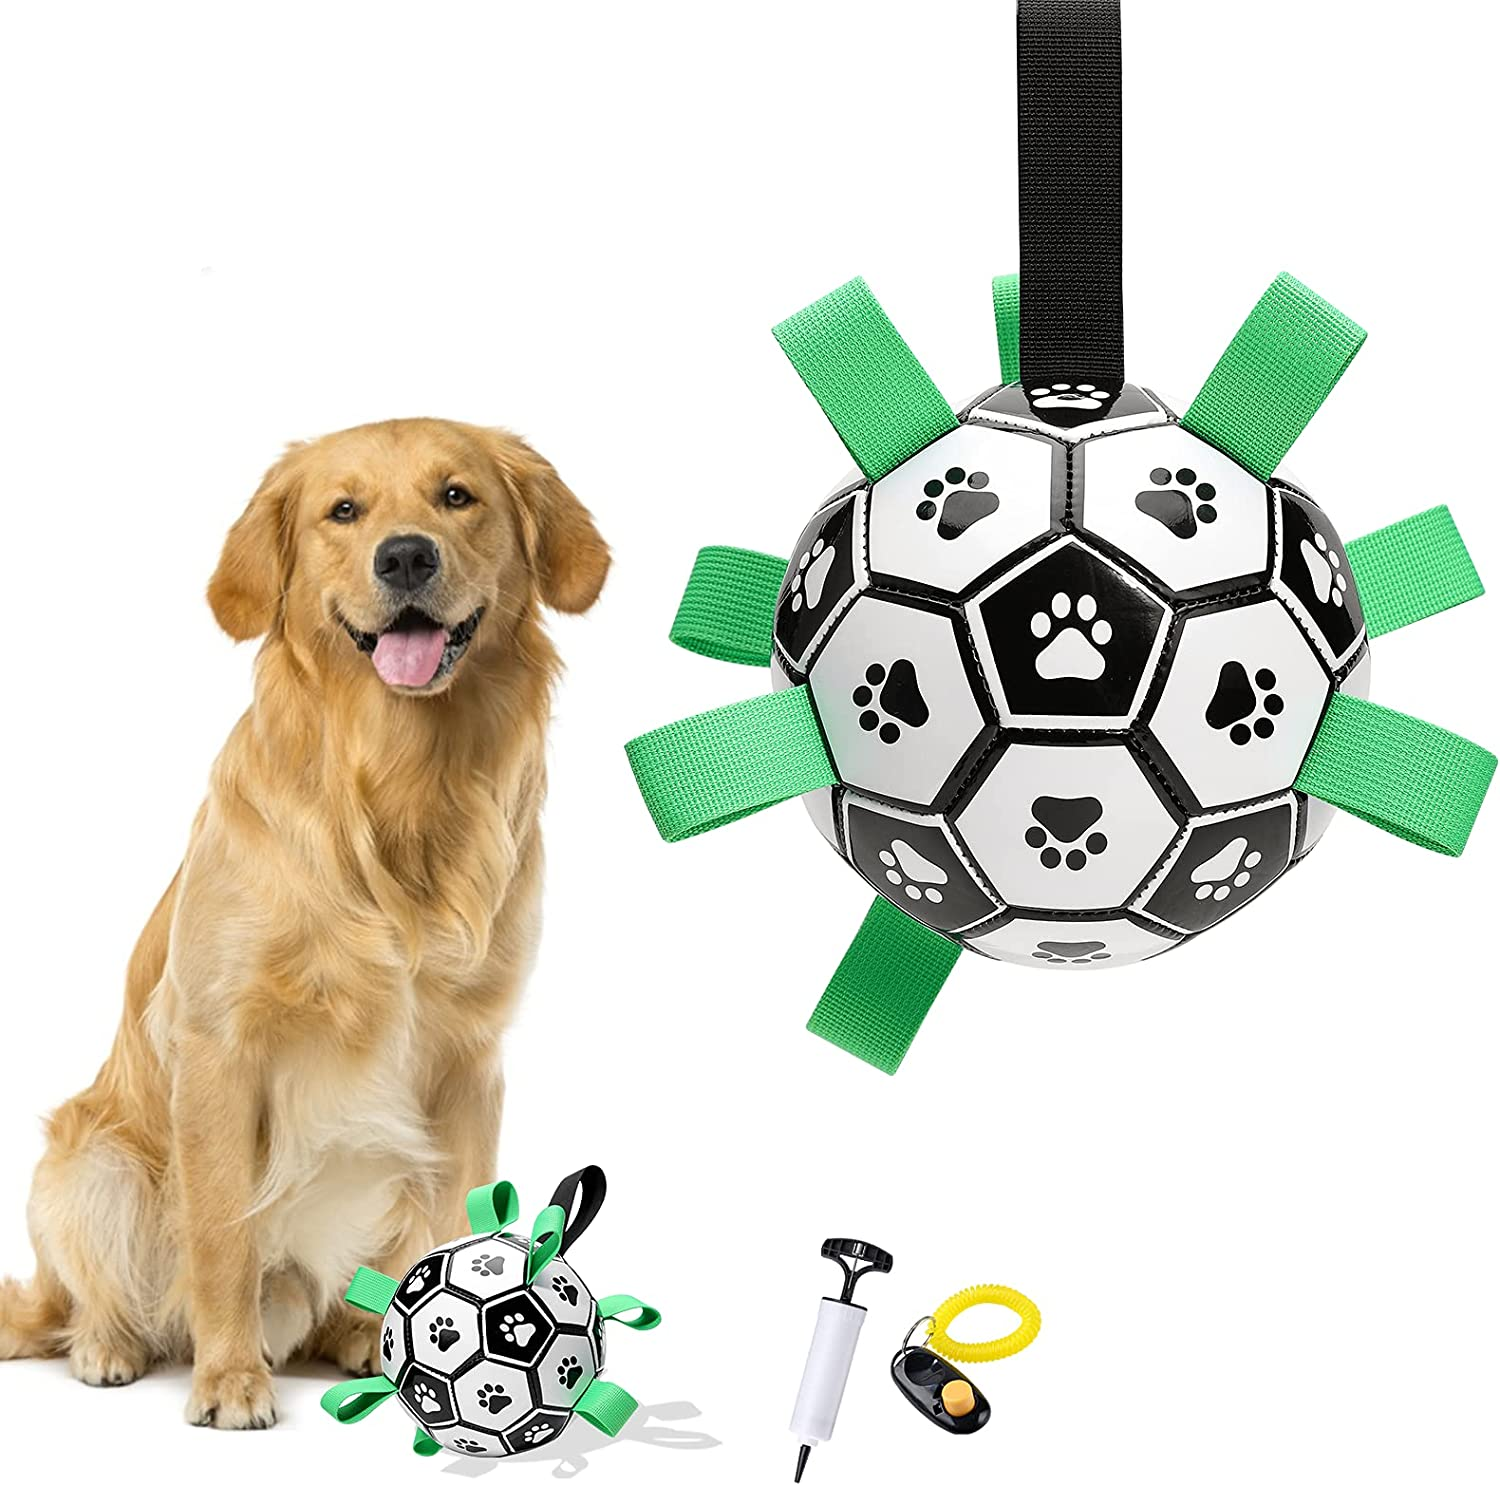 NVTED Grab Tabs Max 84% OFF Dog Ball Toys Elasticity Pet Interactive Clearance SALE Limited time High